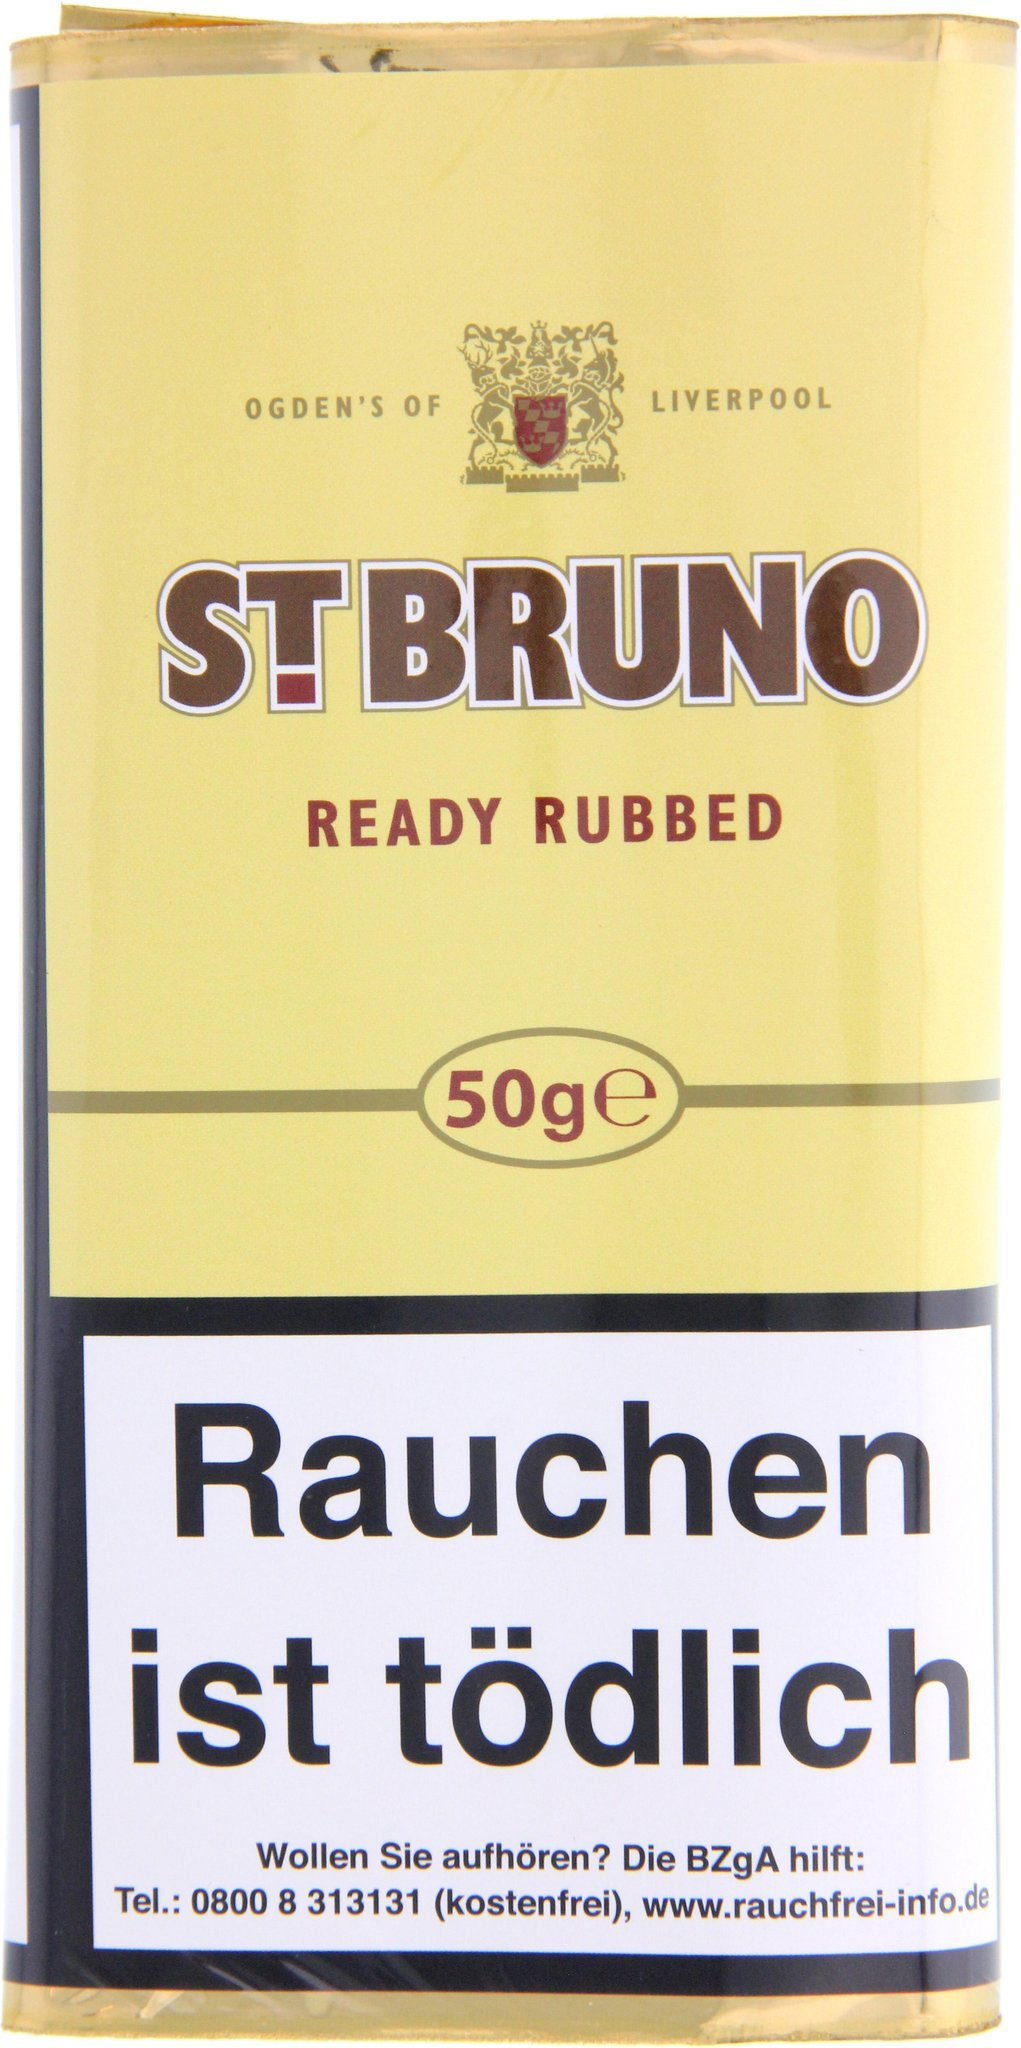 St. Bruno Flake St. Bruno Ready Rubbed